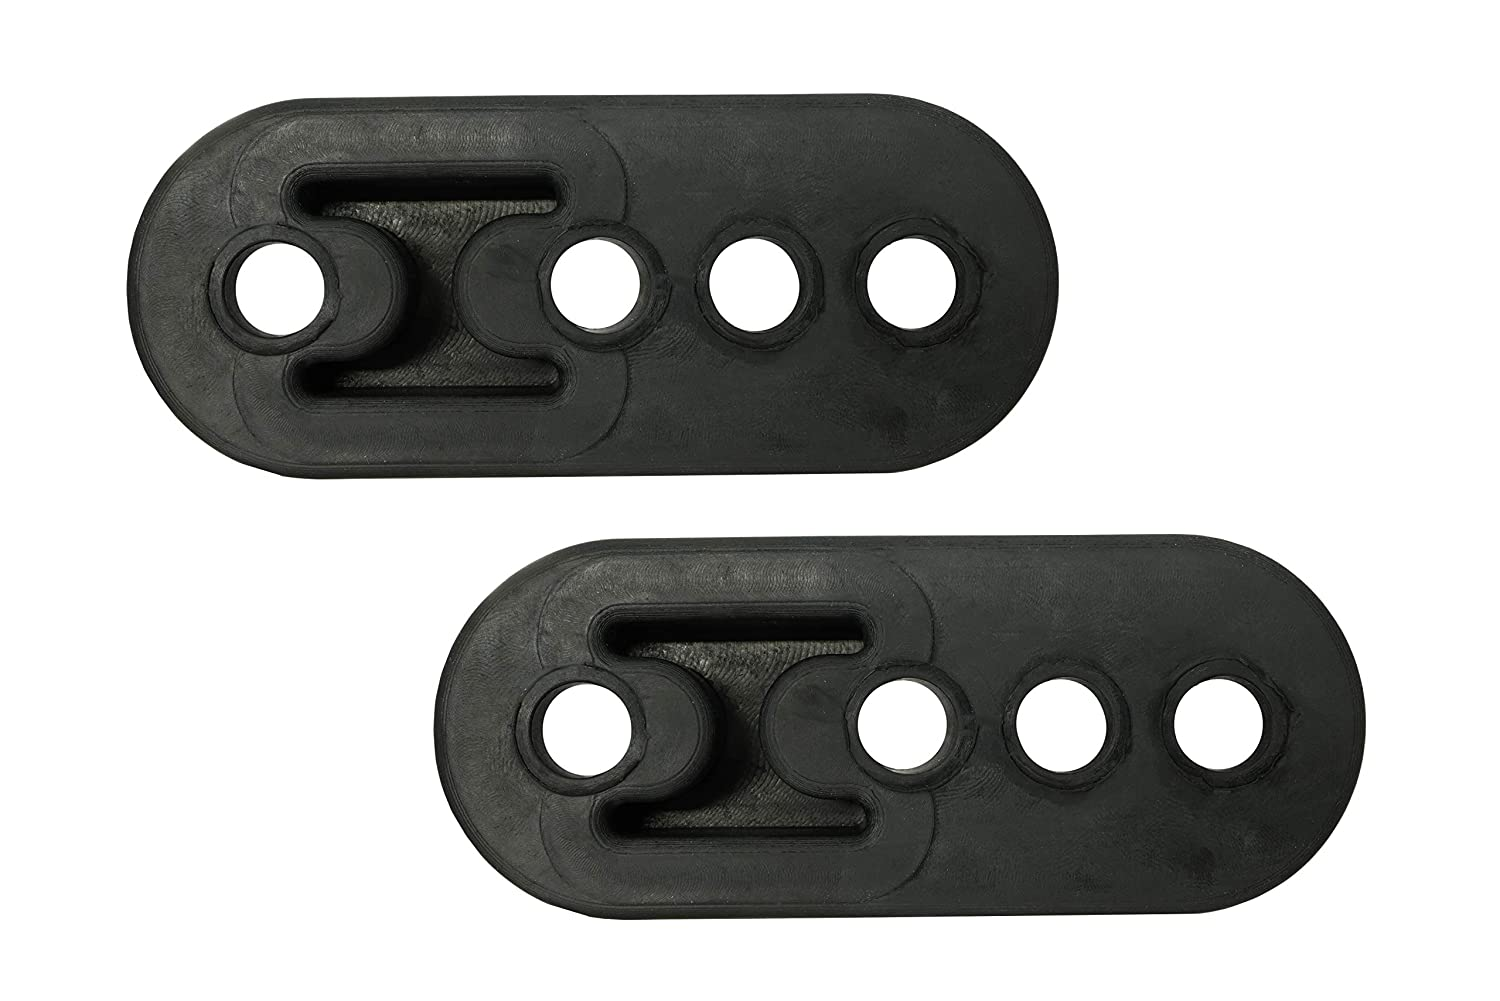 Red Notched - 2 Pack PitVisit Premium 4 Hole Exhaust Hanger Mount Bushings High Density Rubber Insulator Shock Absorbent Replacement Support Bracket for Tail Pipe Exhaust System